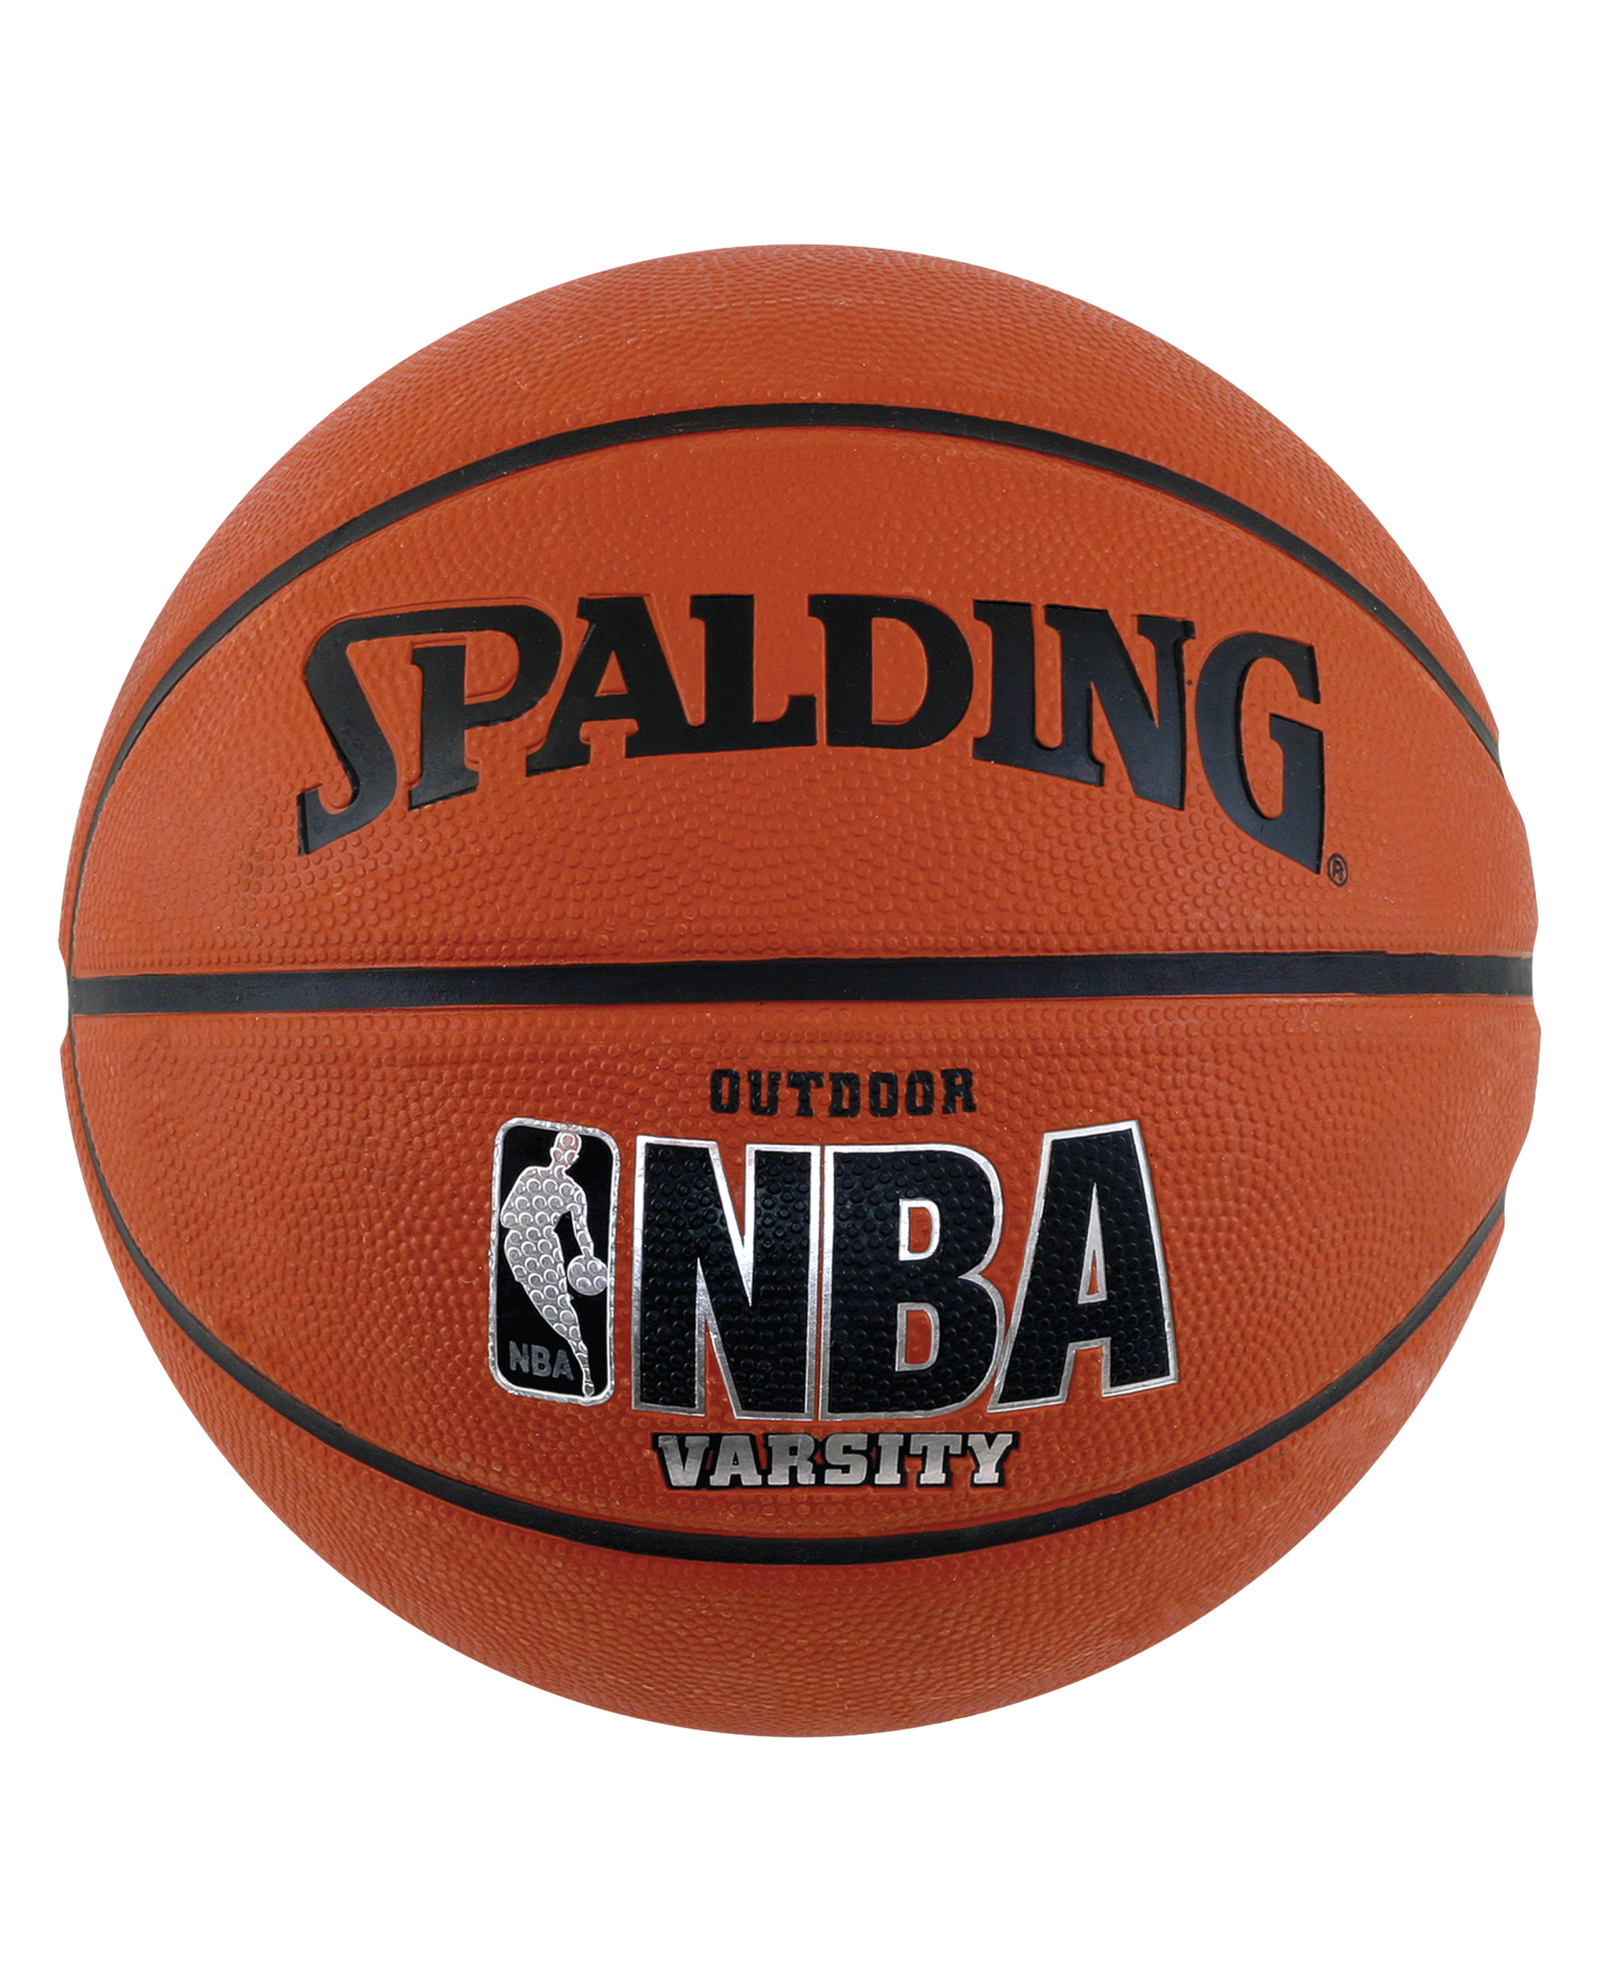 NBA VARSITY BASKETBALL - Spalding US